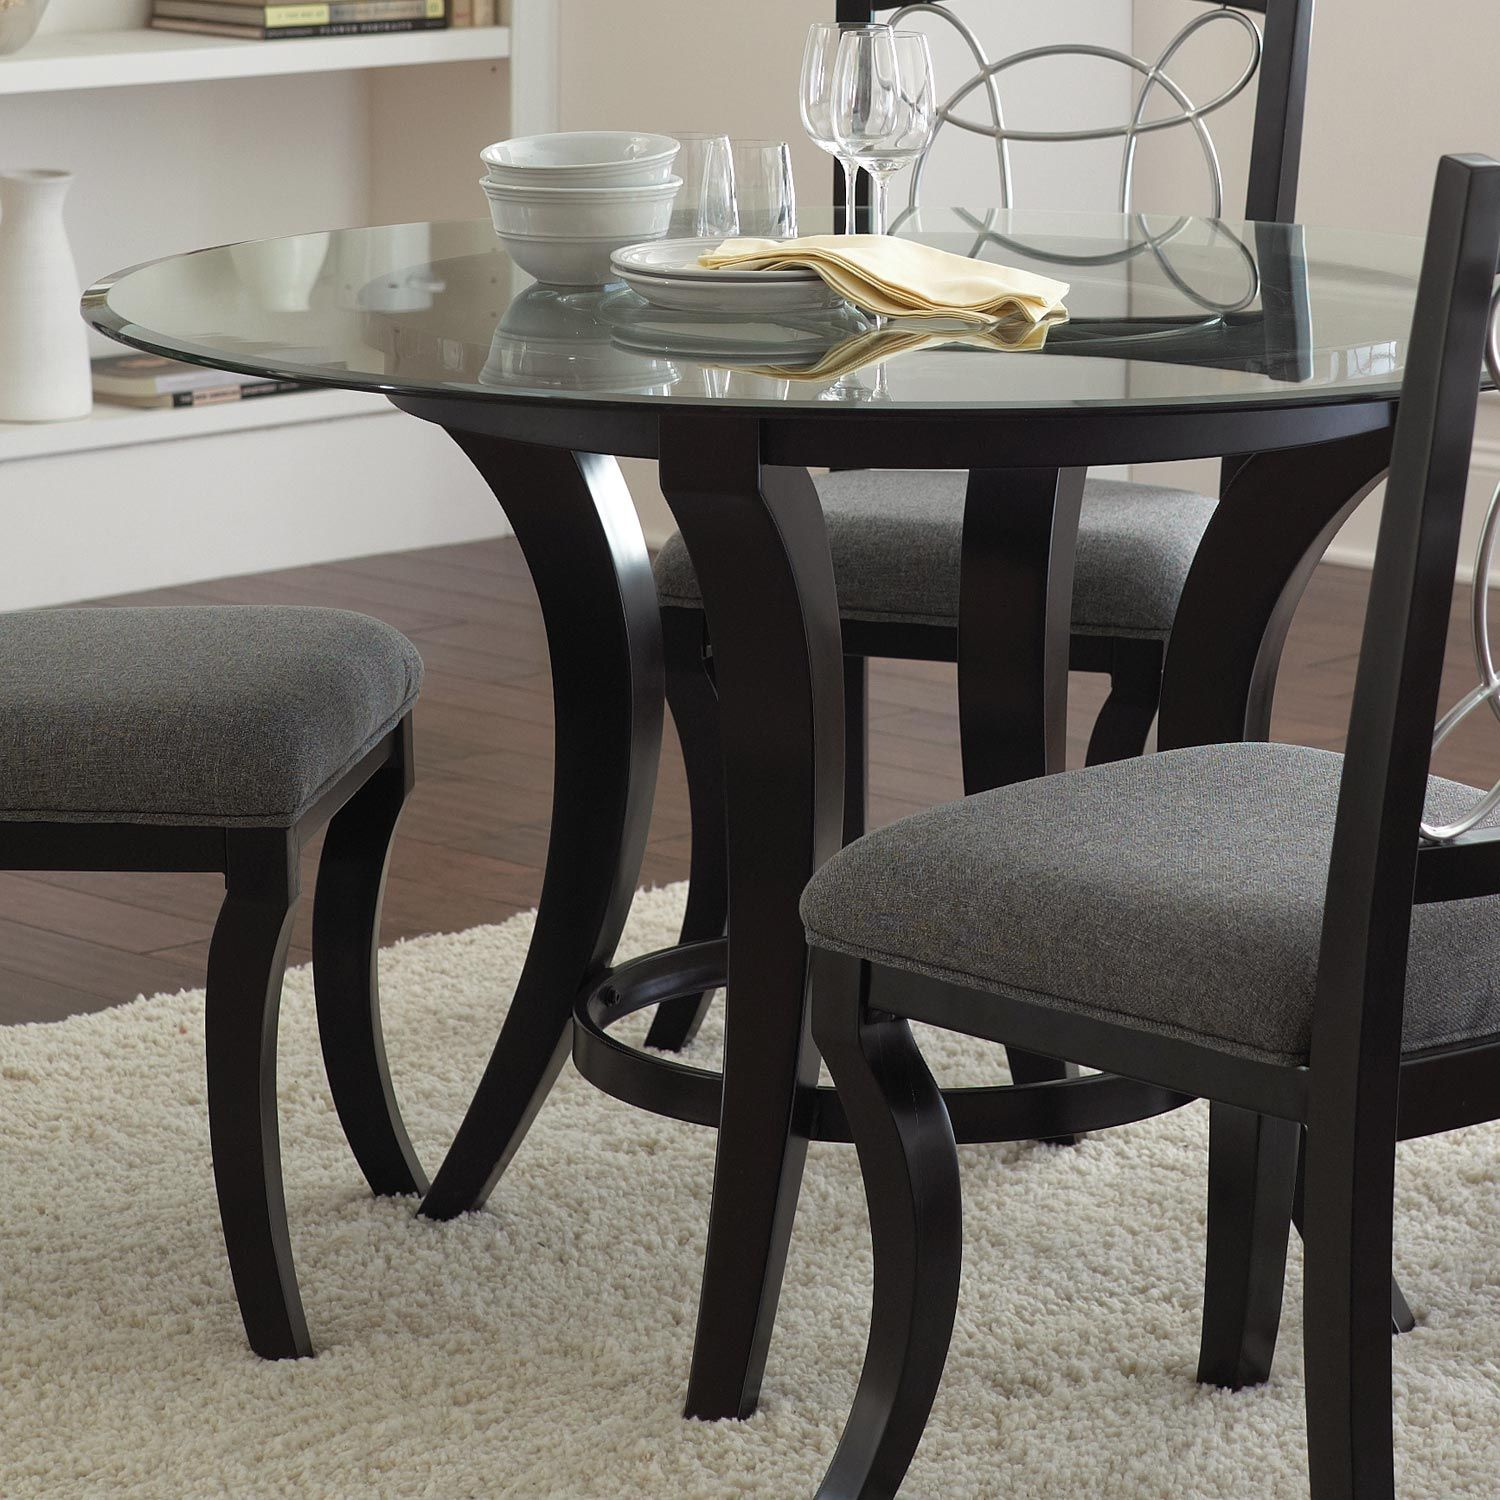 Cayman Round Dining Table Glass Top Wood Base Round Dining